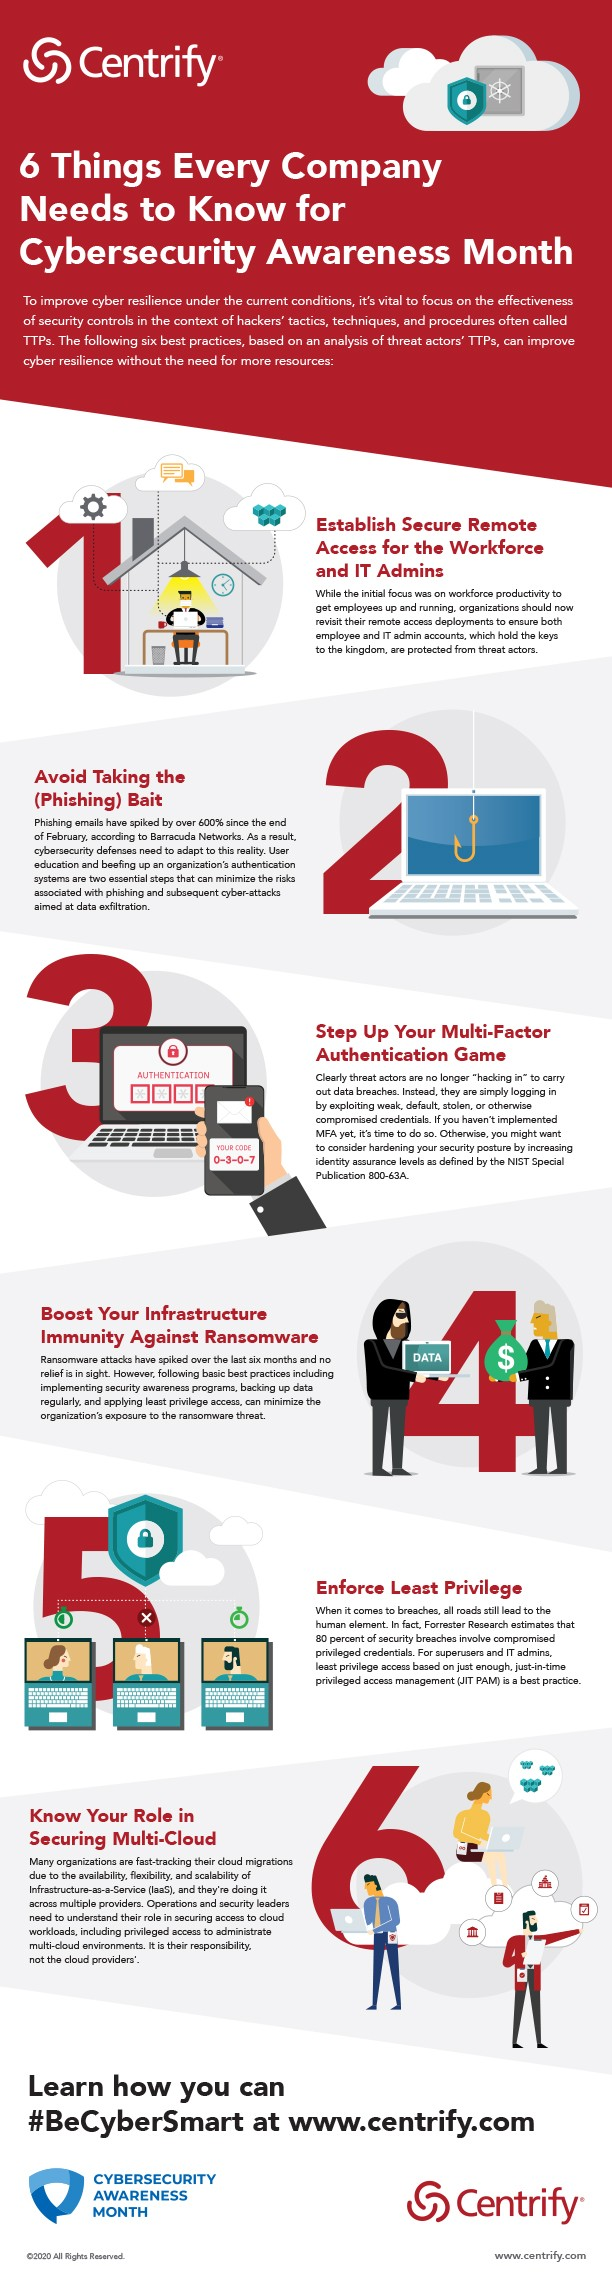 Cybersecurity Awareness Month Infographic